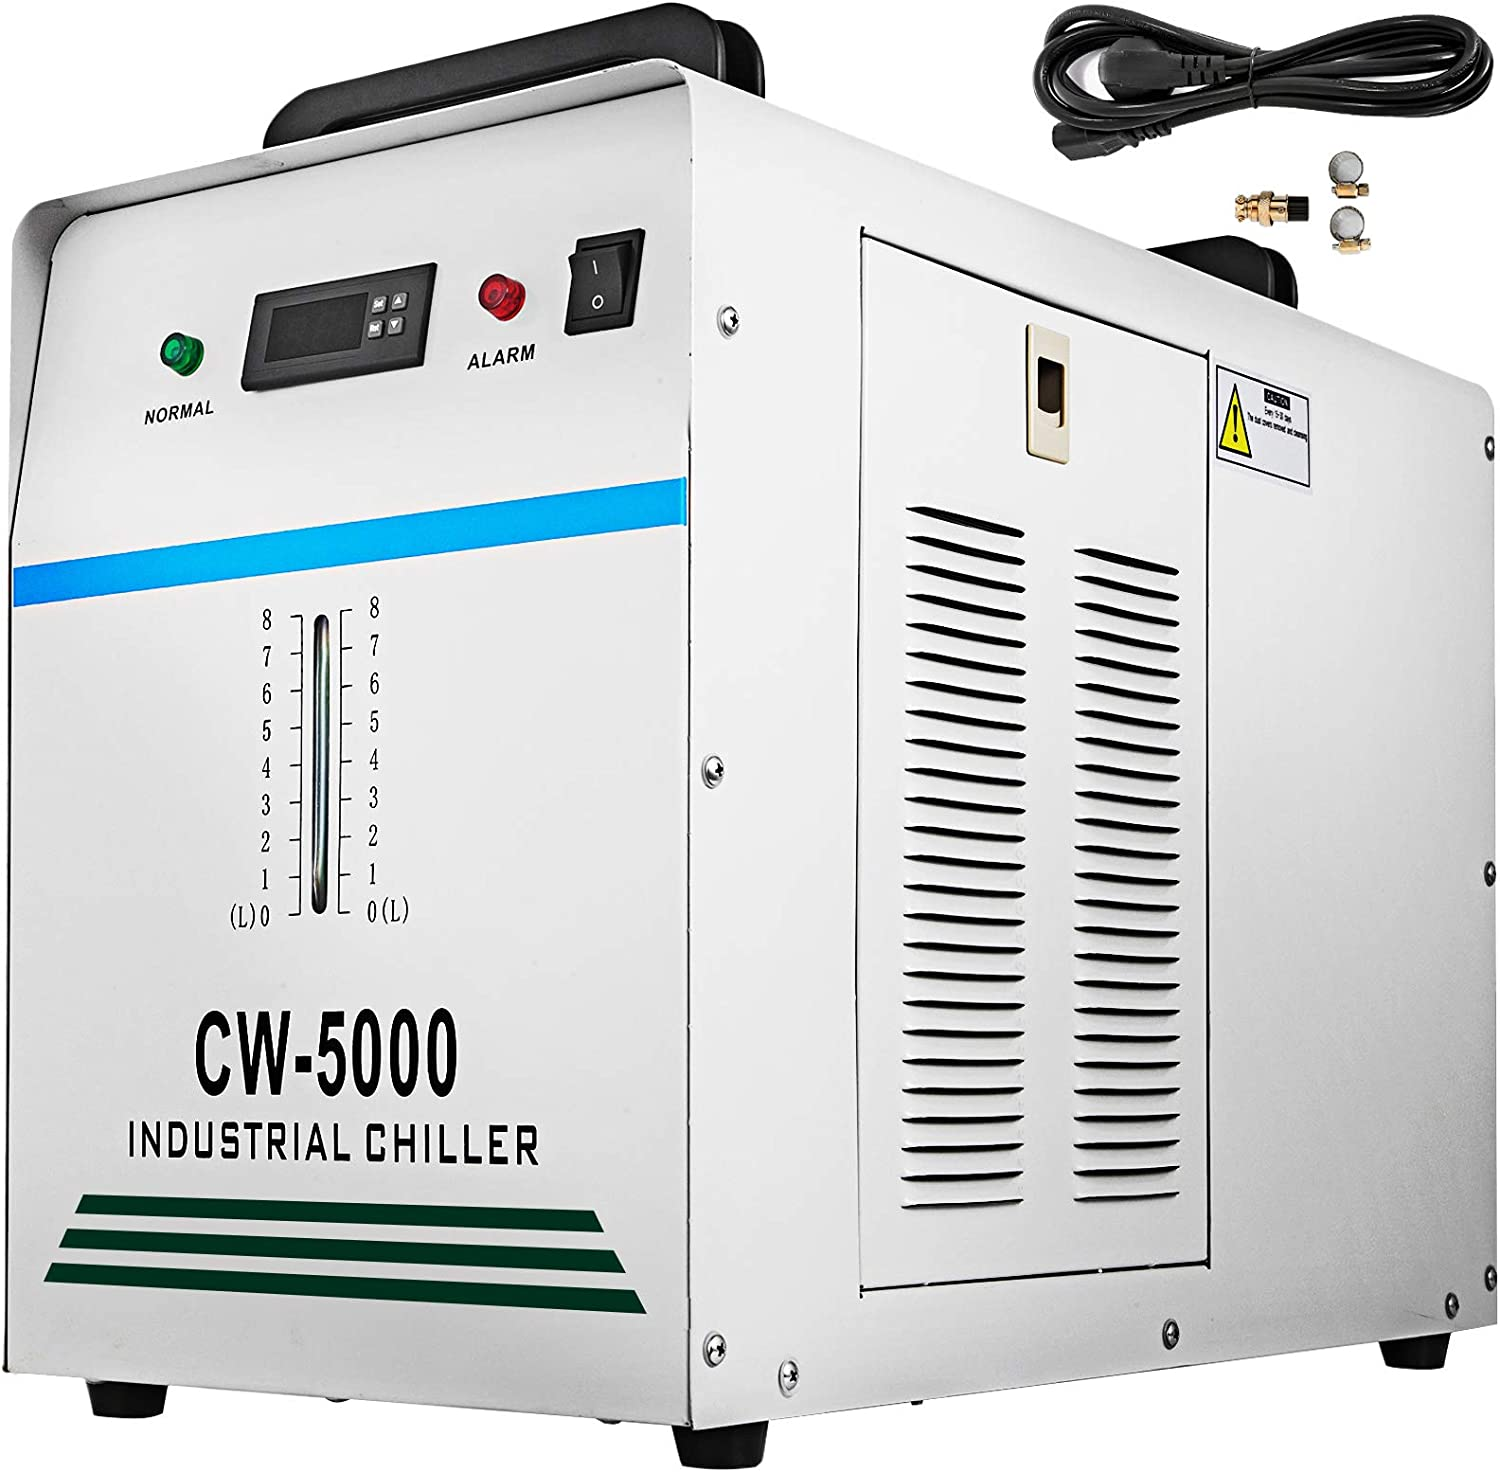 safety BestEquip Cooler CW5000DG Industrial Chiller Water CW-5000 Selling Whi